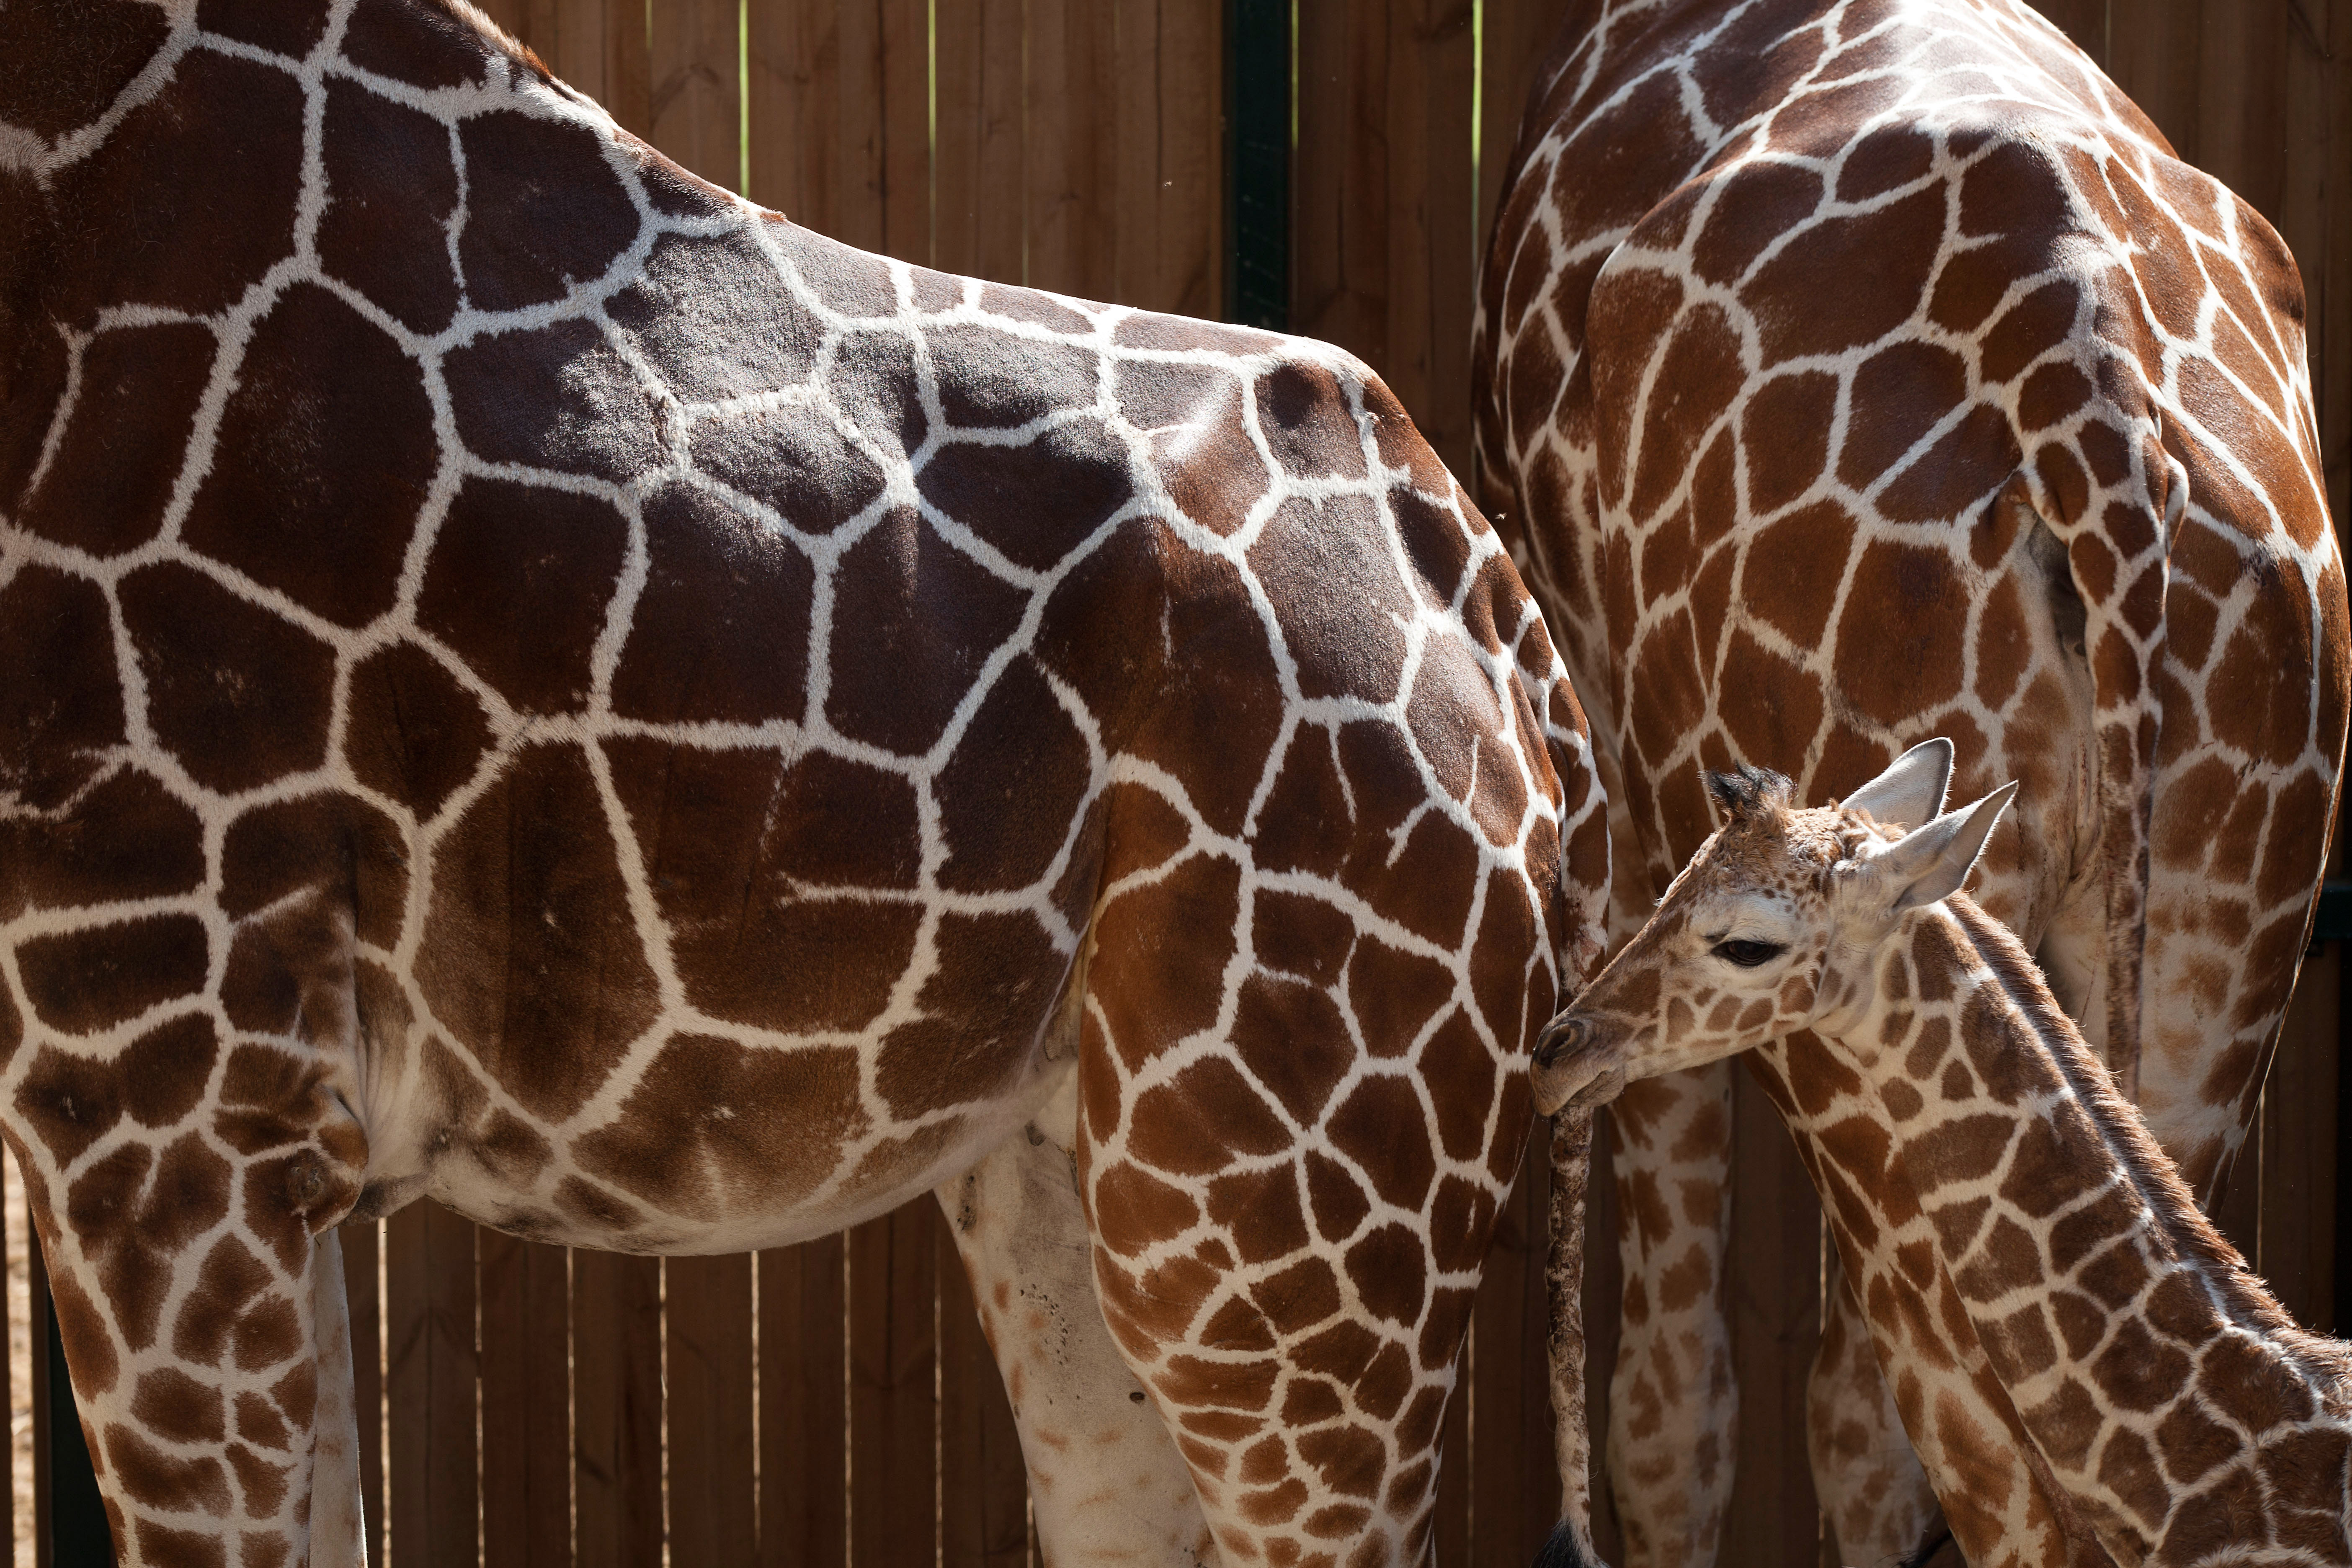 Giraffe babies are up to six feet tall and 150 pounds when they are born.